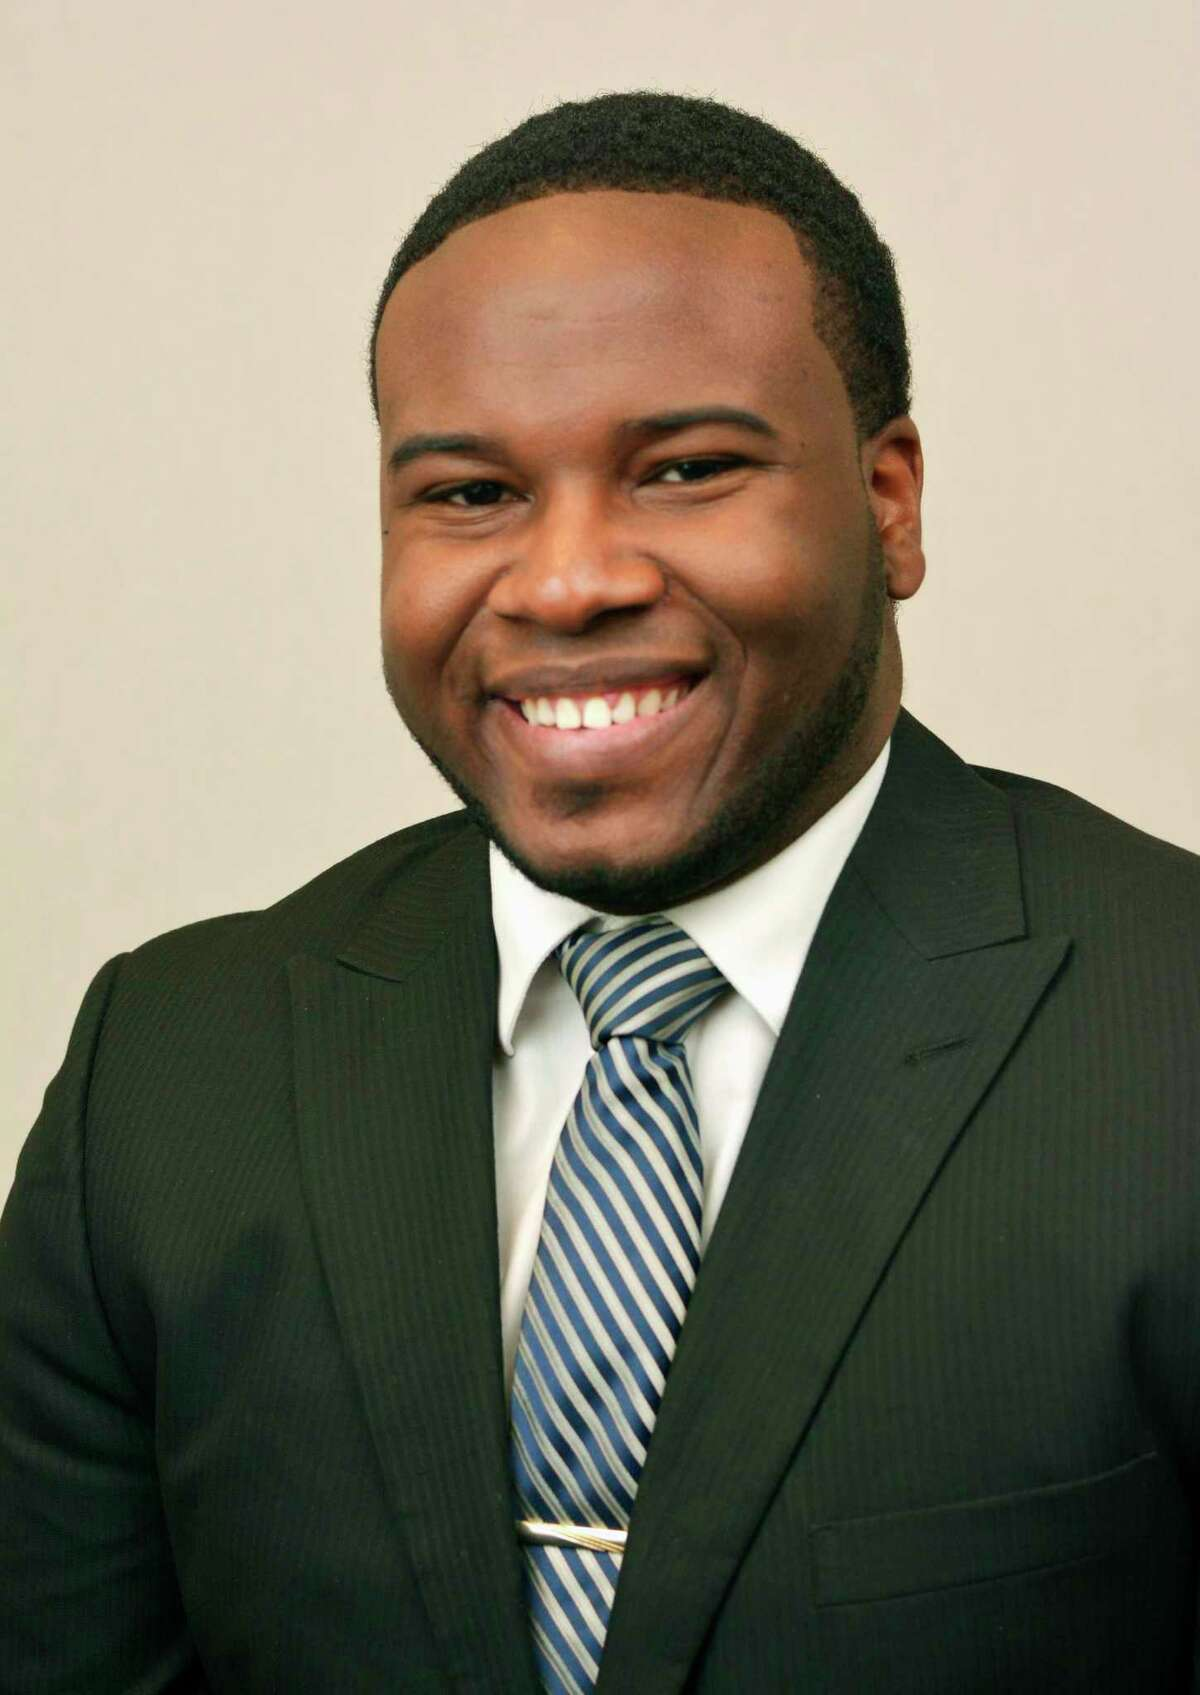 This 2014 portrait provided by Harding University in Searcy, Ark., shows Botham Jean, who was shot and killed by former Dallas police officer Amber Guyger, who was convicted of murder Tuesday.